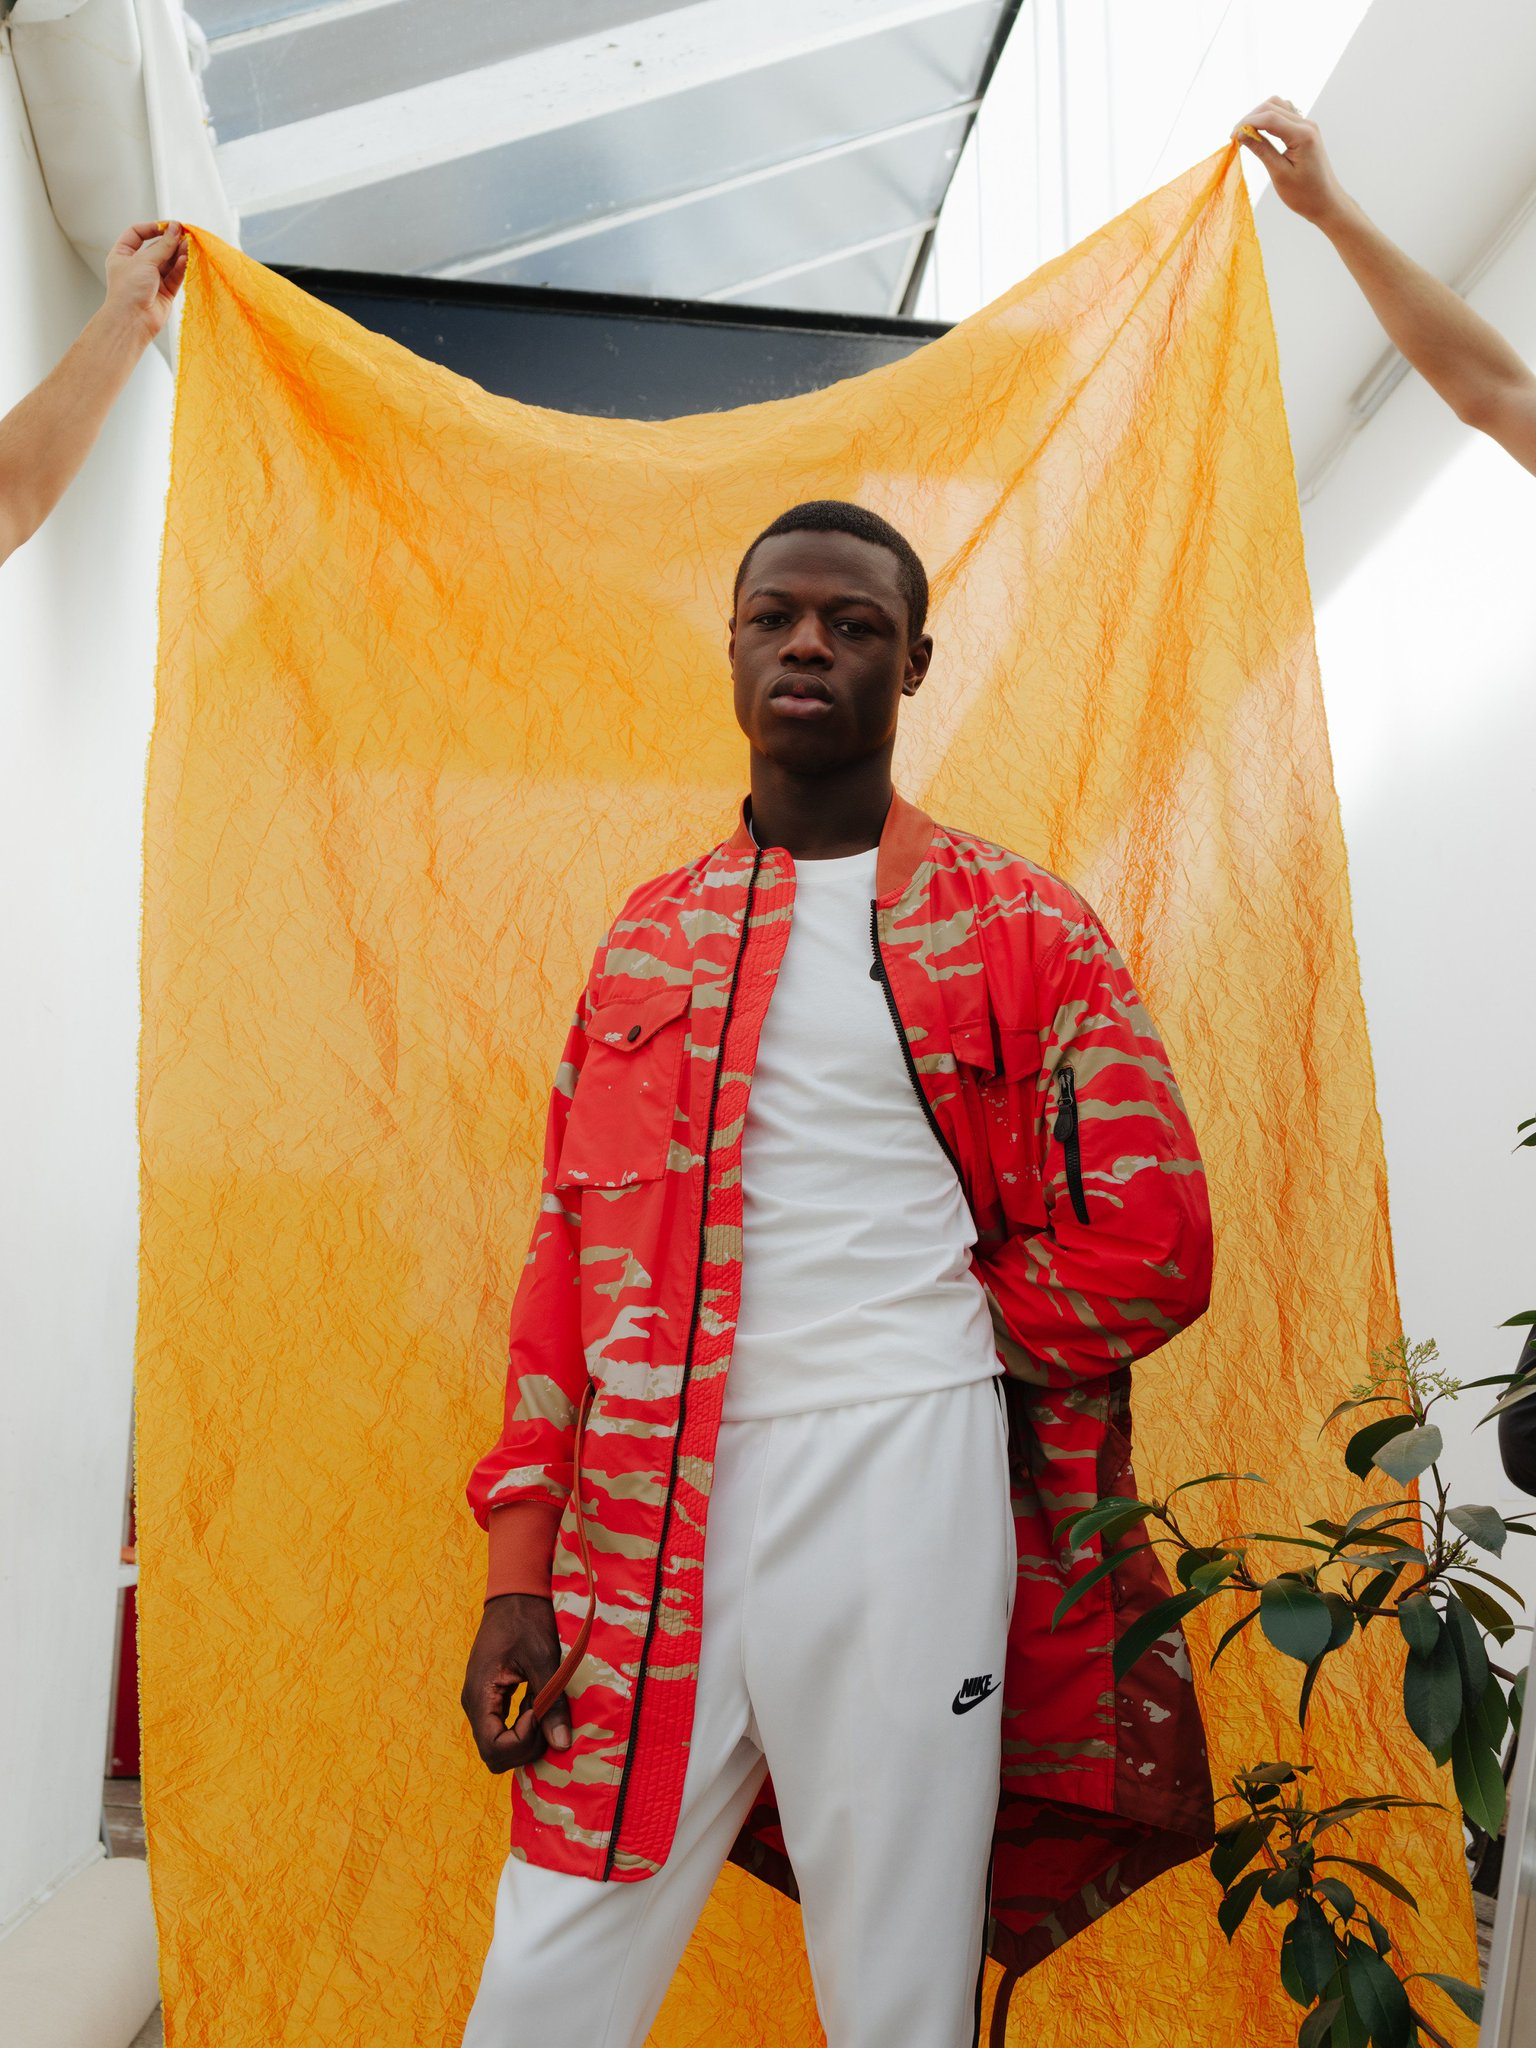 Flexing is second nature to @Jhus in his 'Common Sense' video. https://t.co/8JNjlL6KUl https://t.co/E2dVgH6zkm